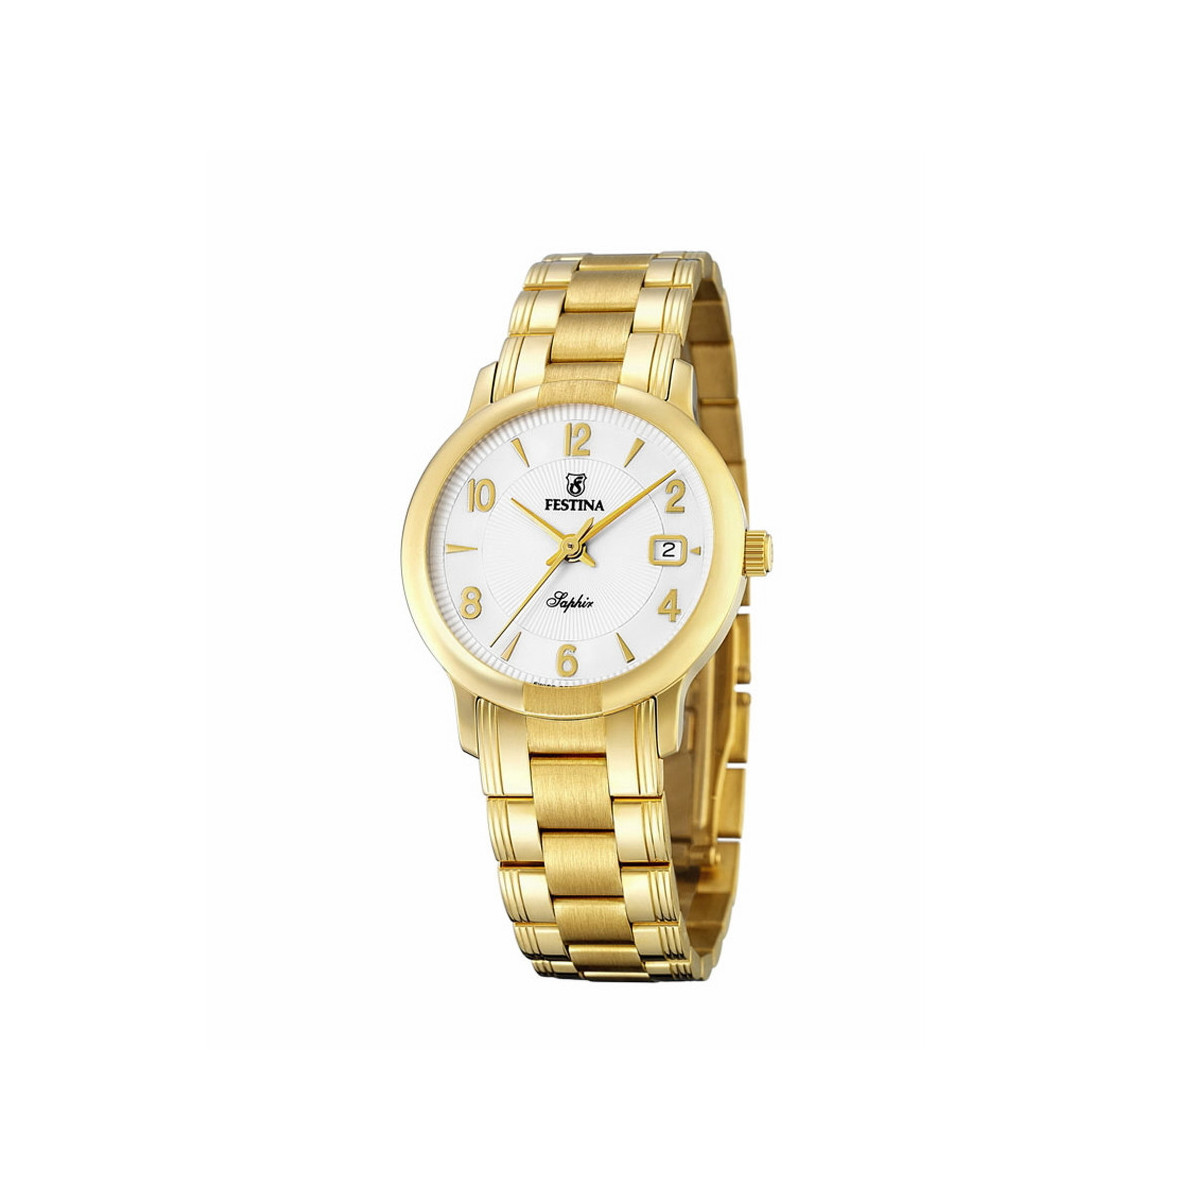 FESTINA GOLD WATCH